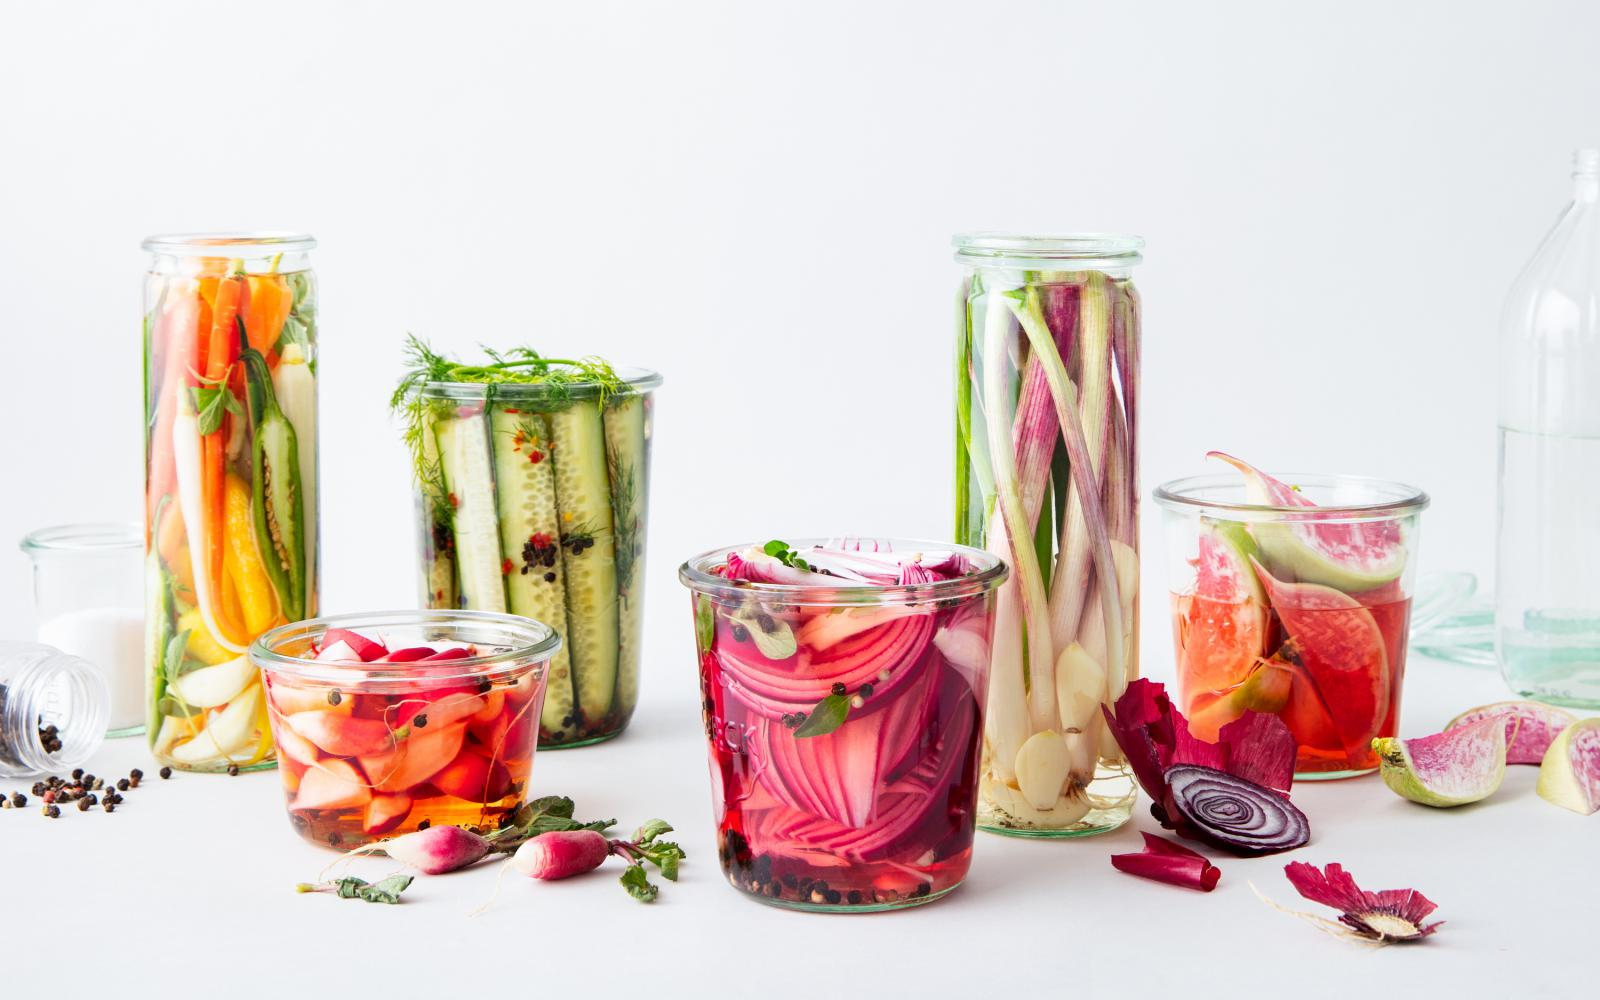 using-vinegar-to-brighten-and-balance-dishes-pickling.jpg